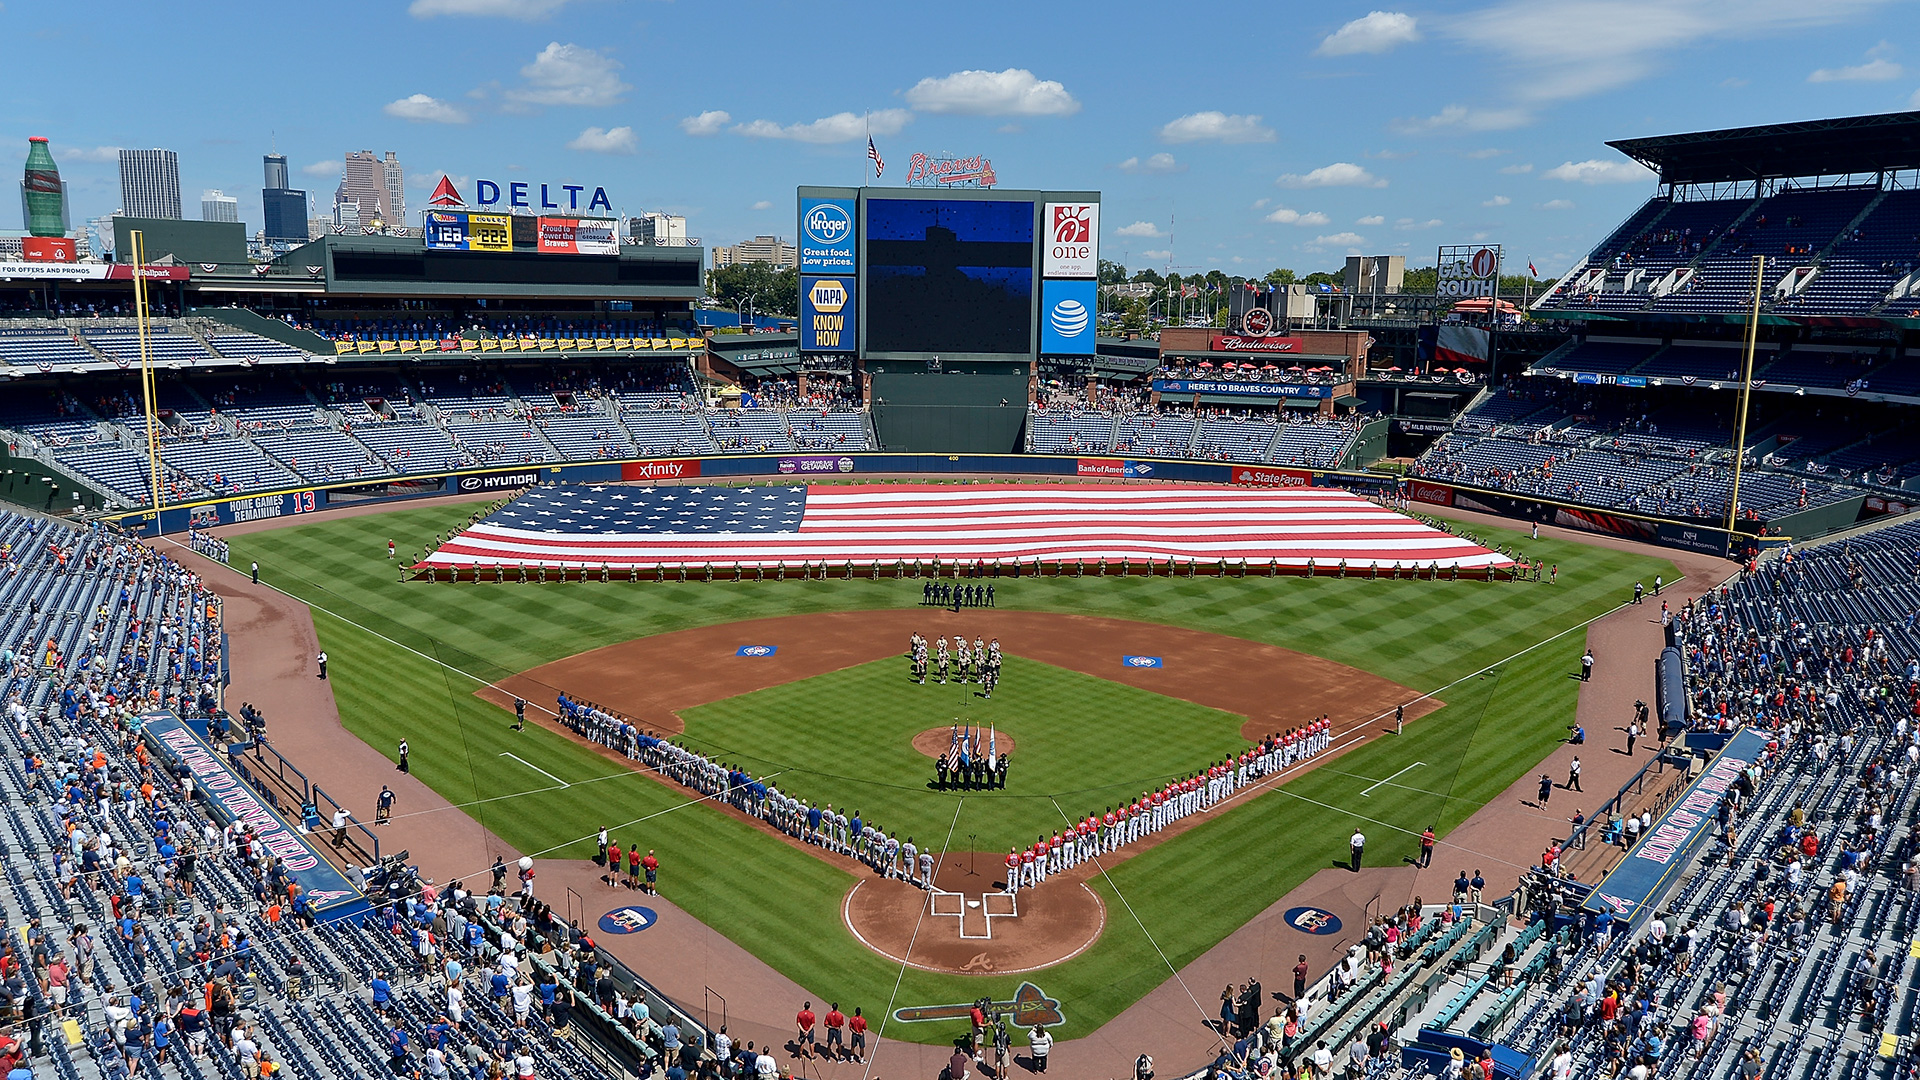 Turner-field-092616-getty-ftrjpg_1ng74uoerkqir15qccyxody5n9